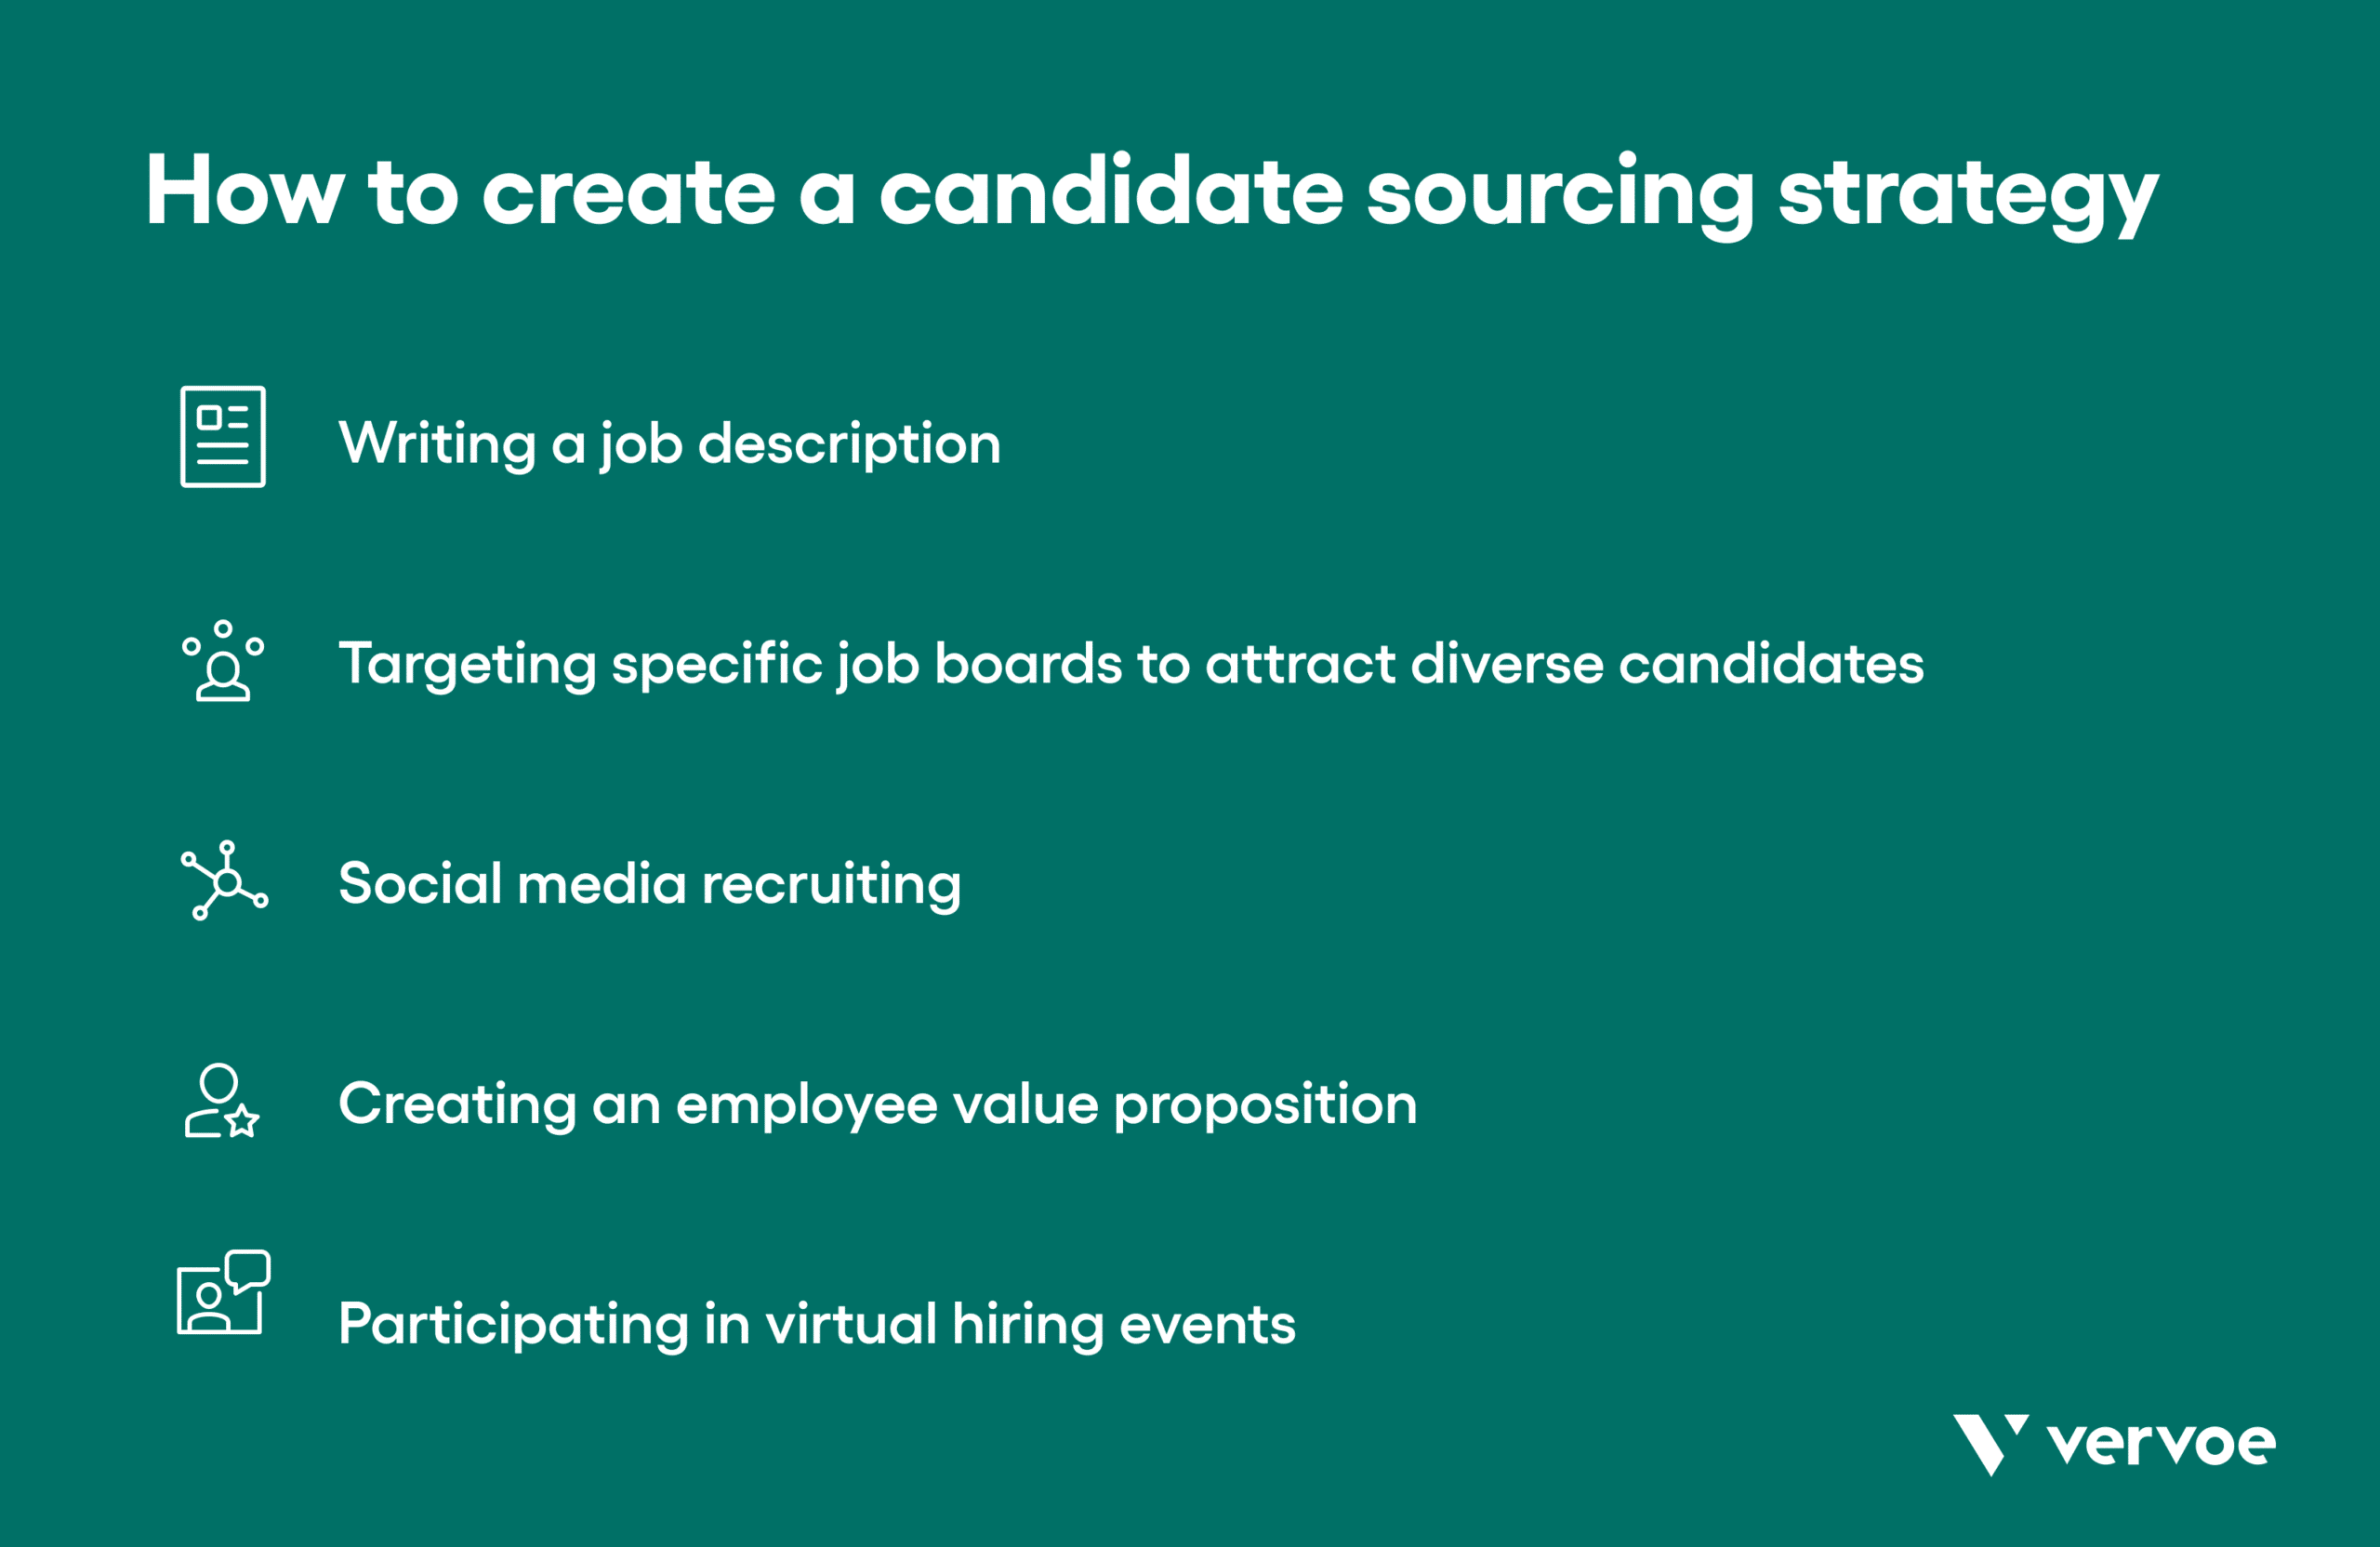 Graphic showing how to create a candidate sourcing strategy